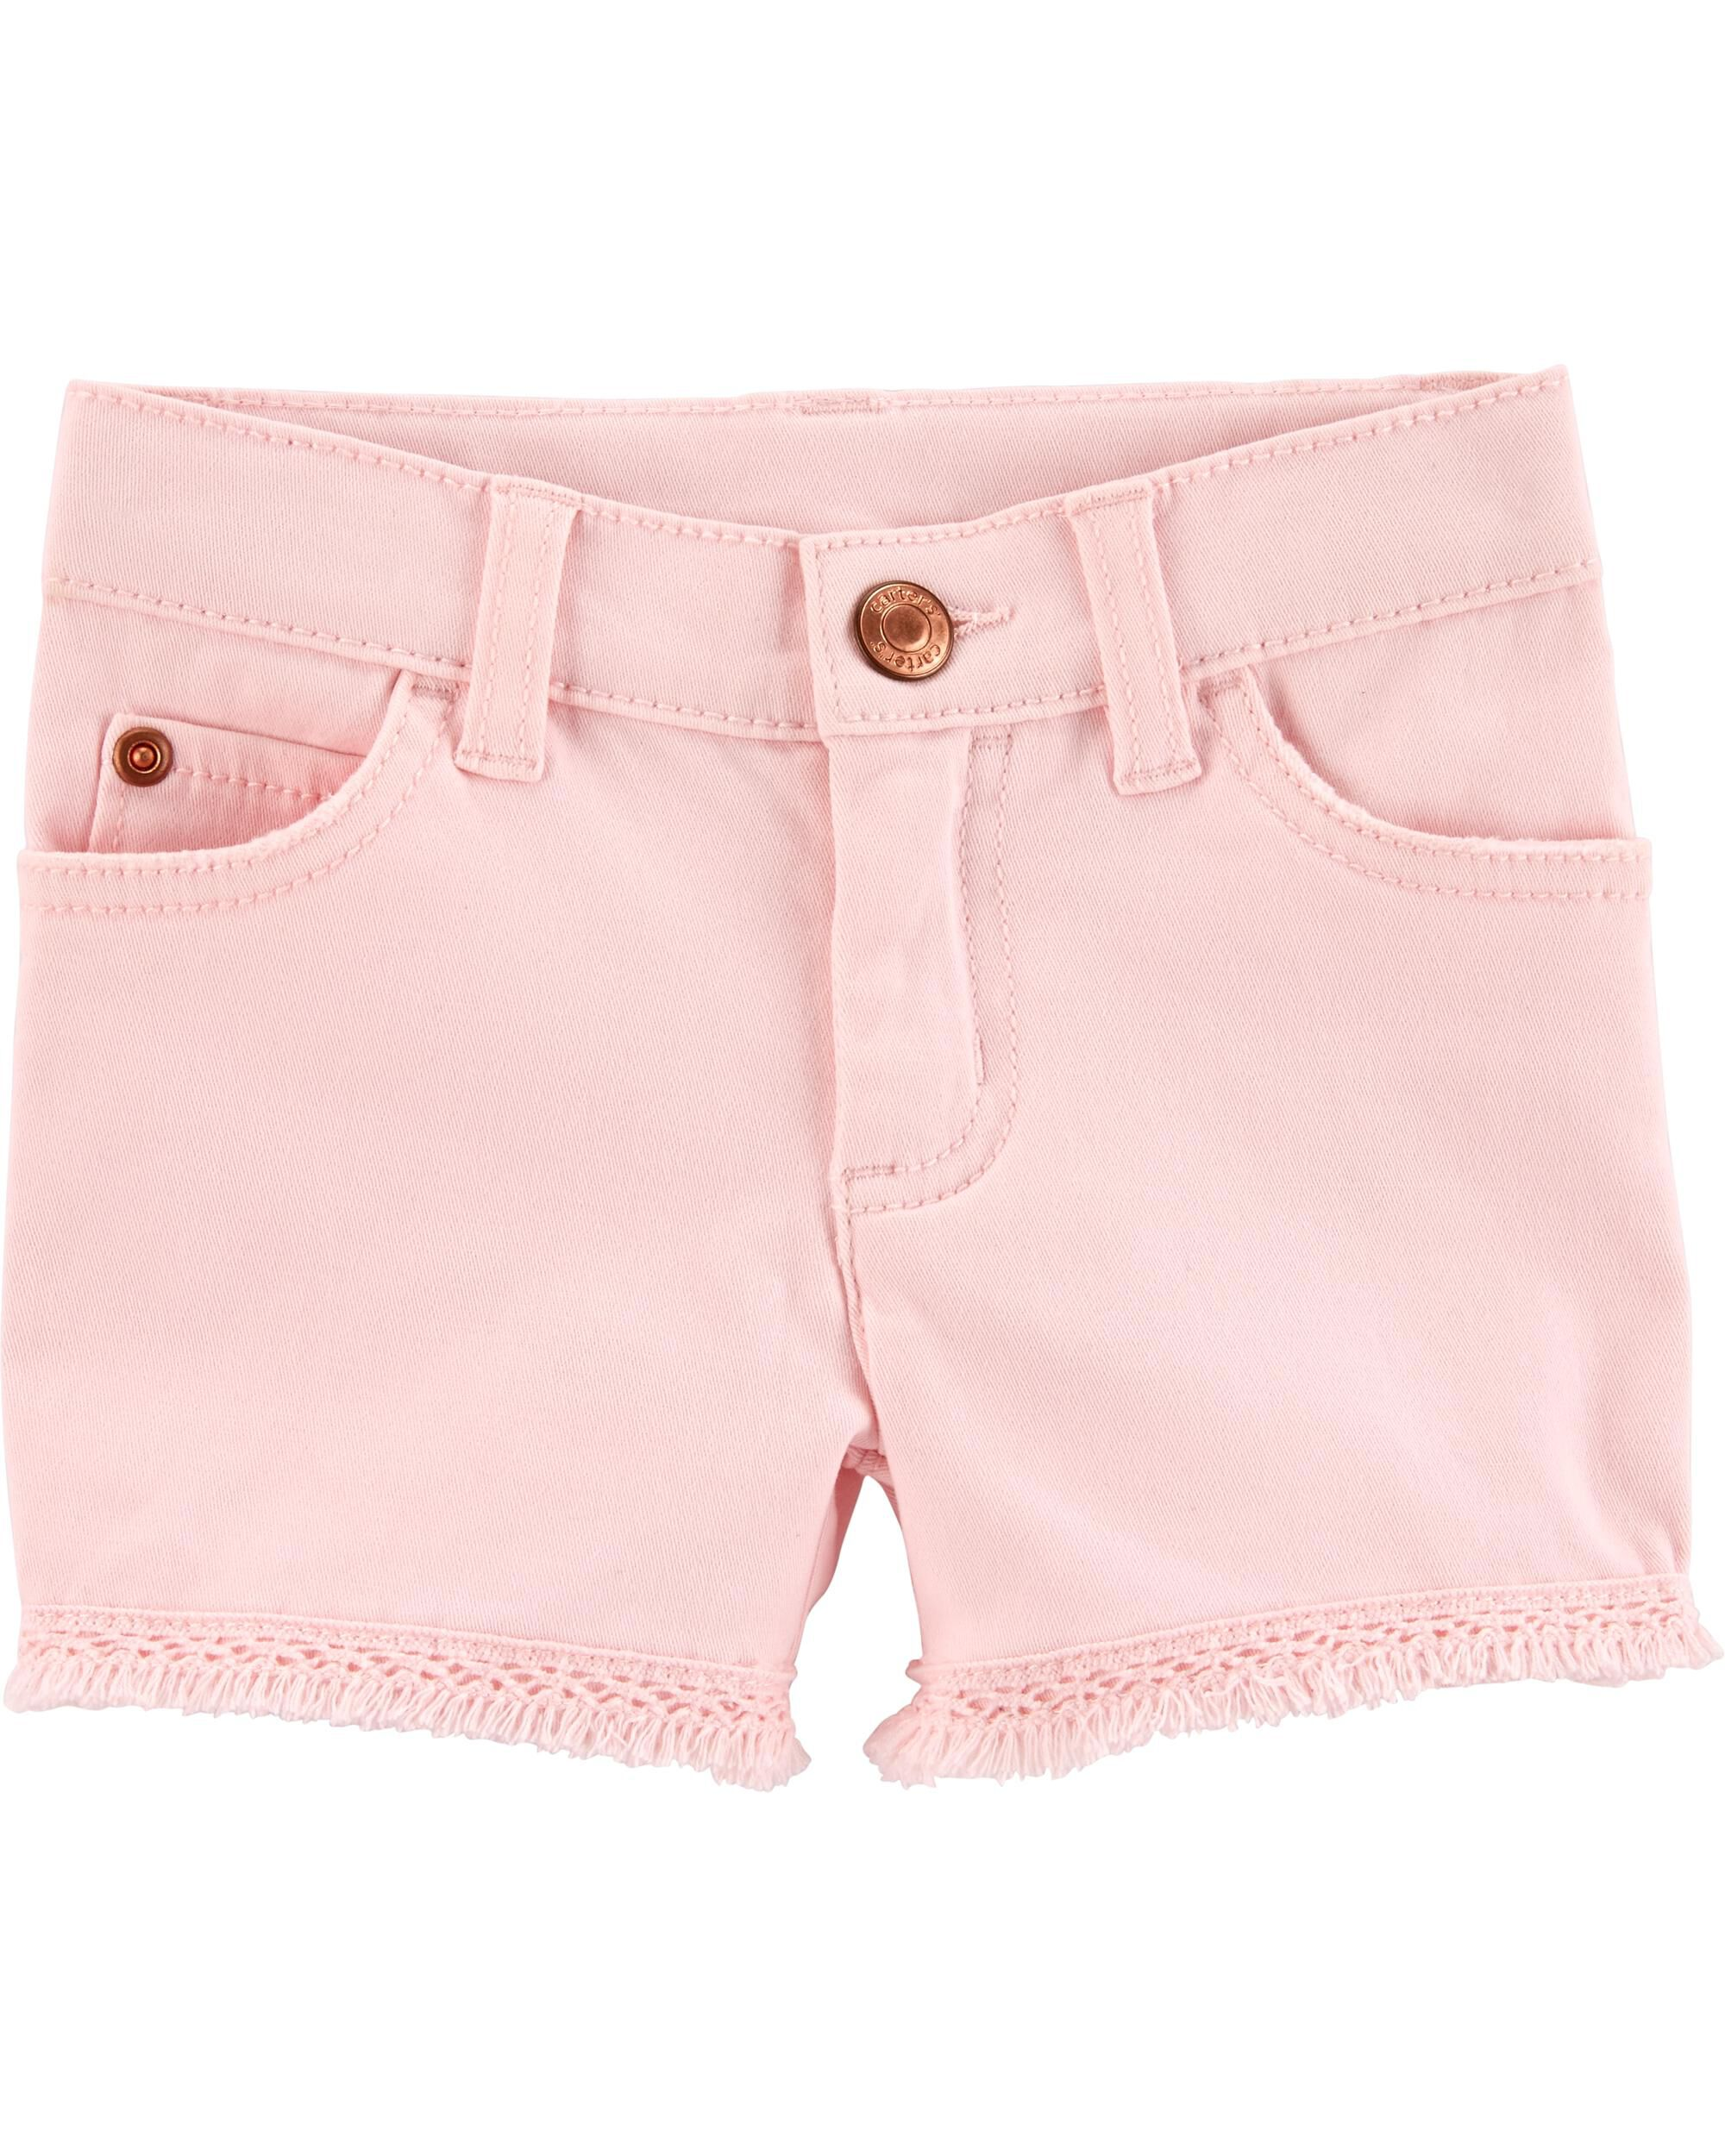 *Clearance*  5-Pocket Denim Shorts